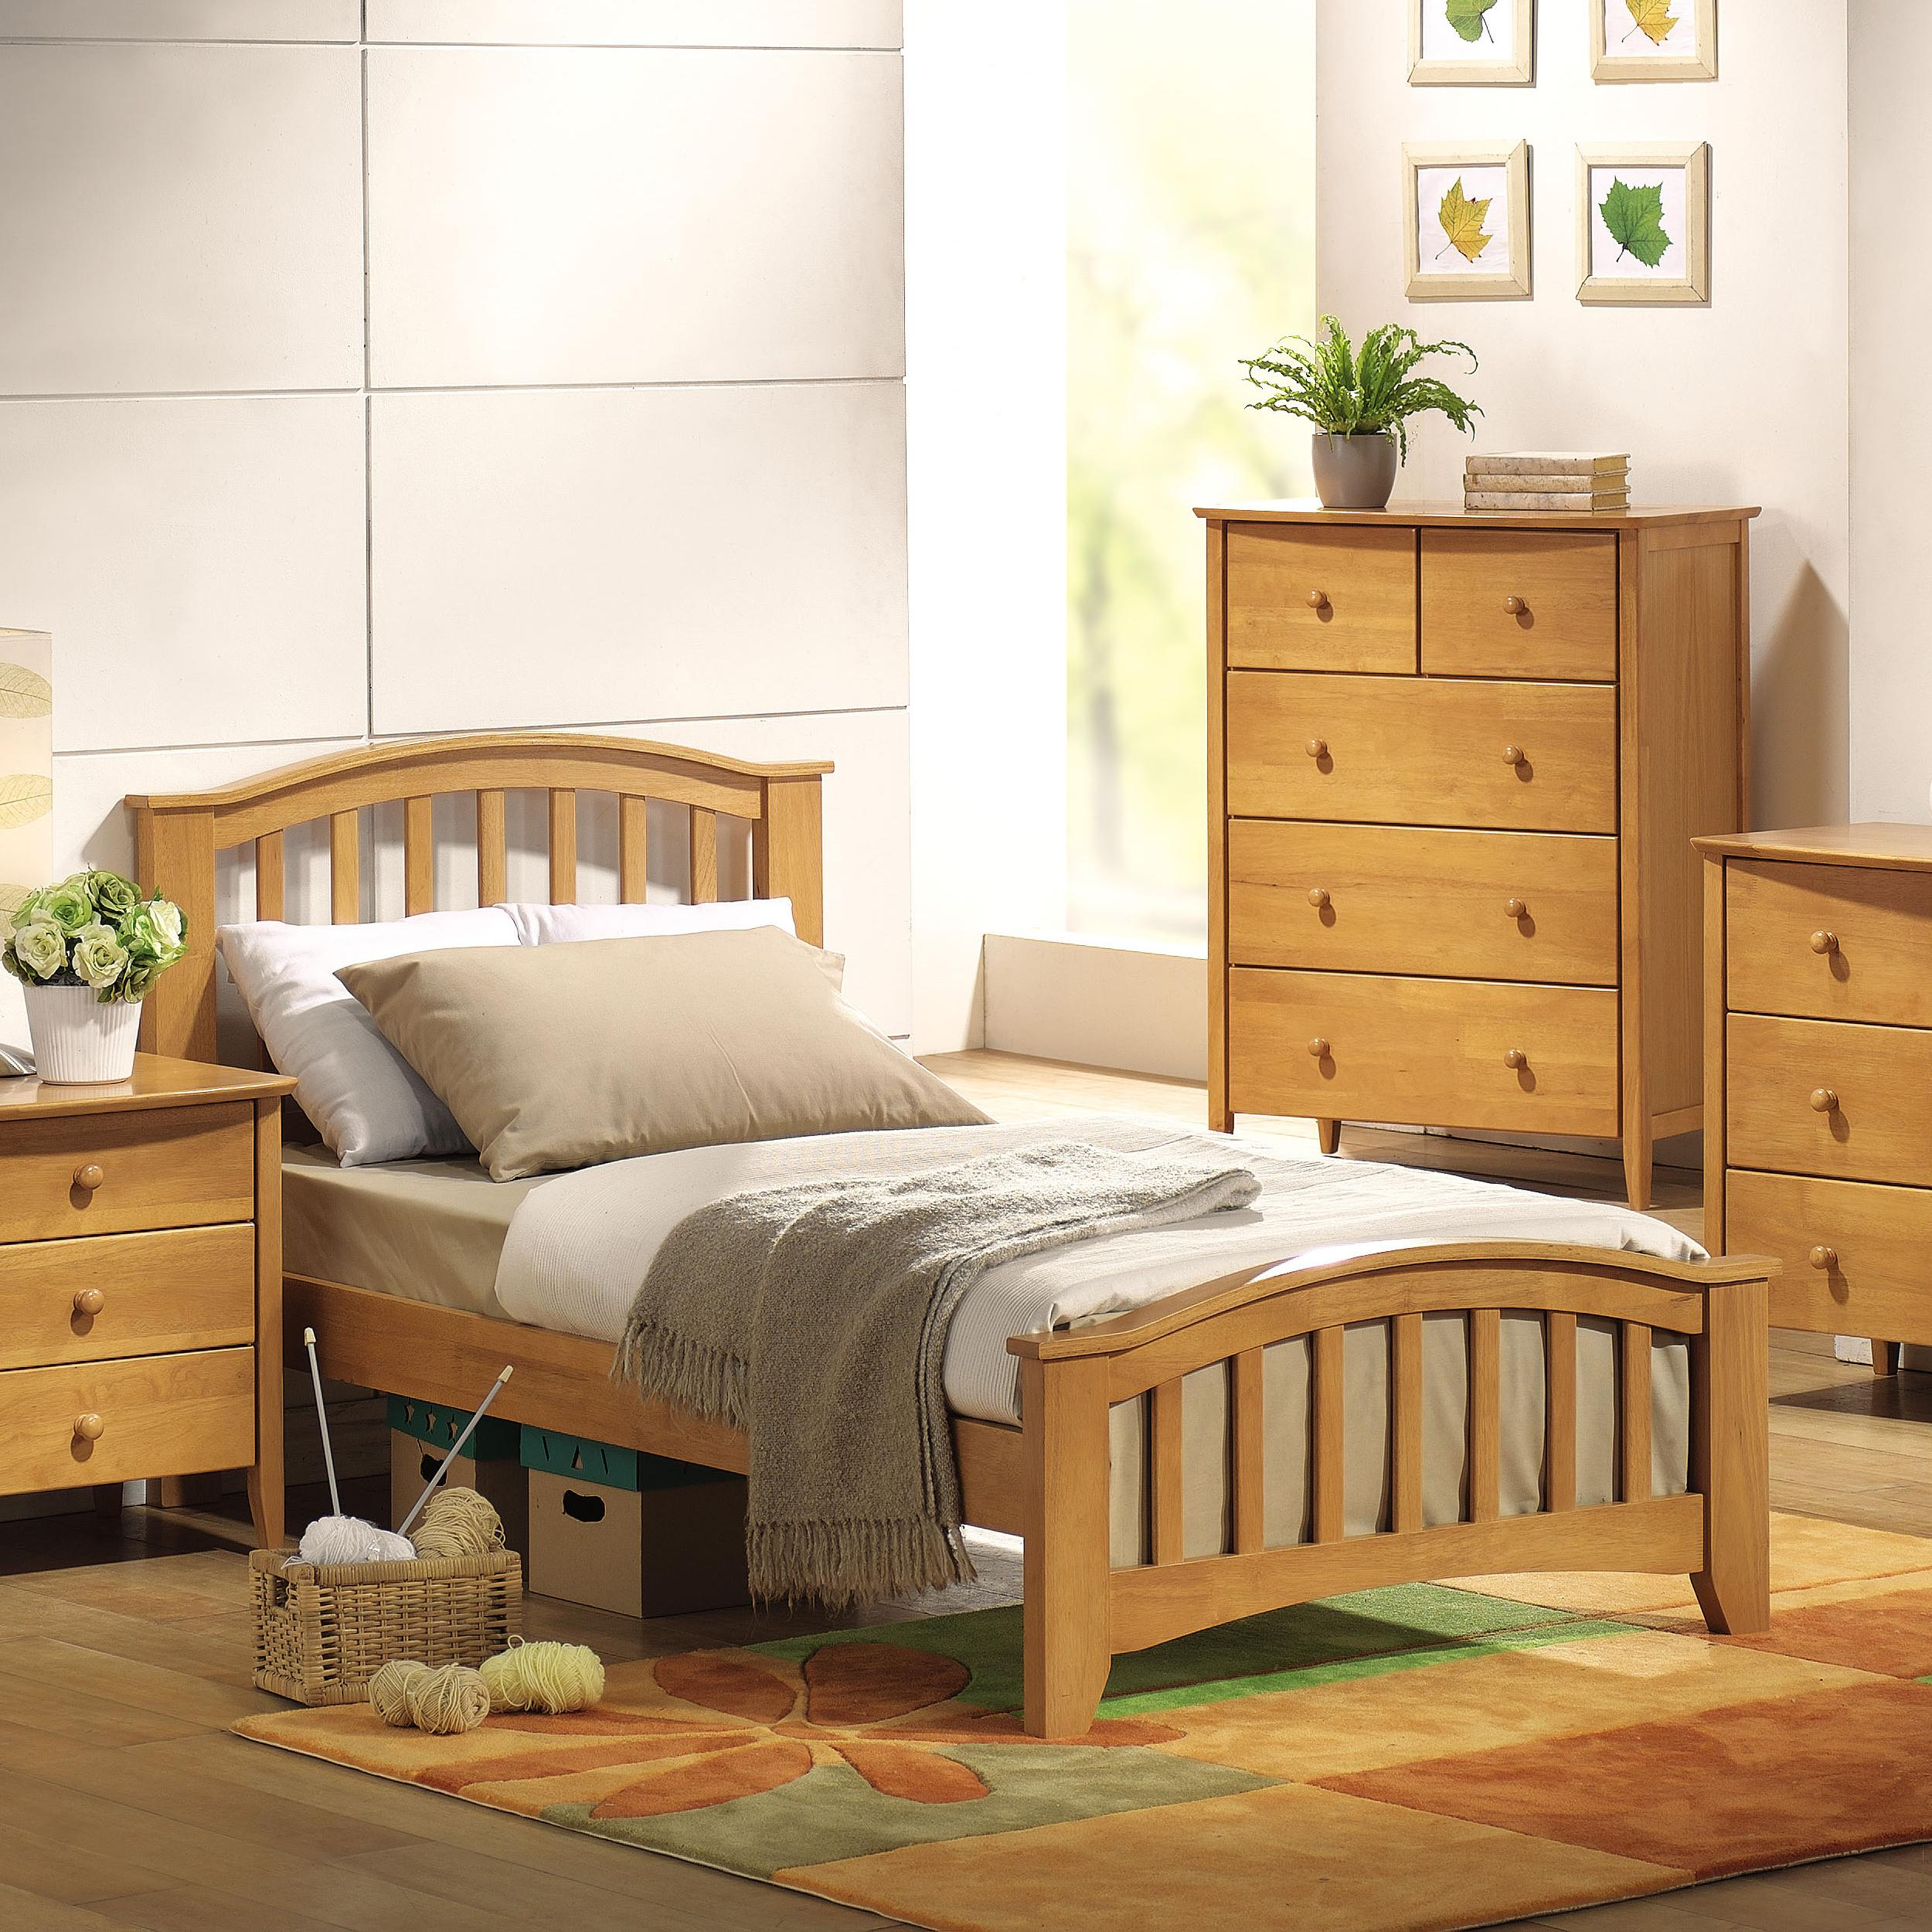 Acme Furniture San Marino Full Slat Bed - Item Number: 8967F